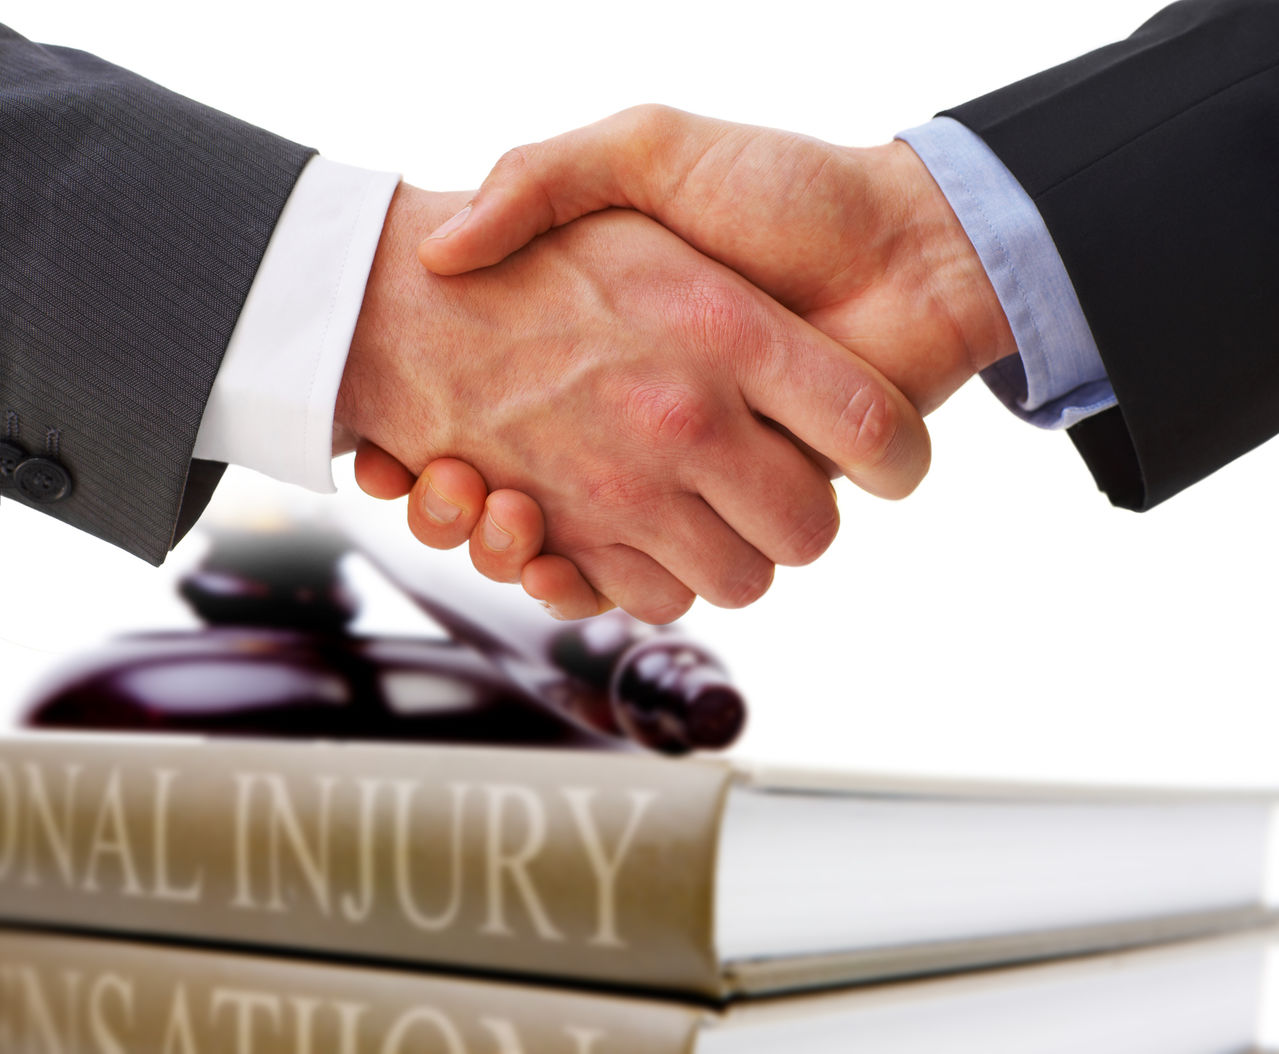 Brief Overview On Filing Accident Claim By Your Delaware County Car Accident Attorney